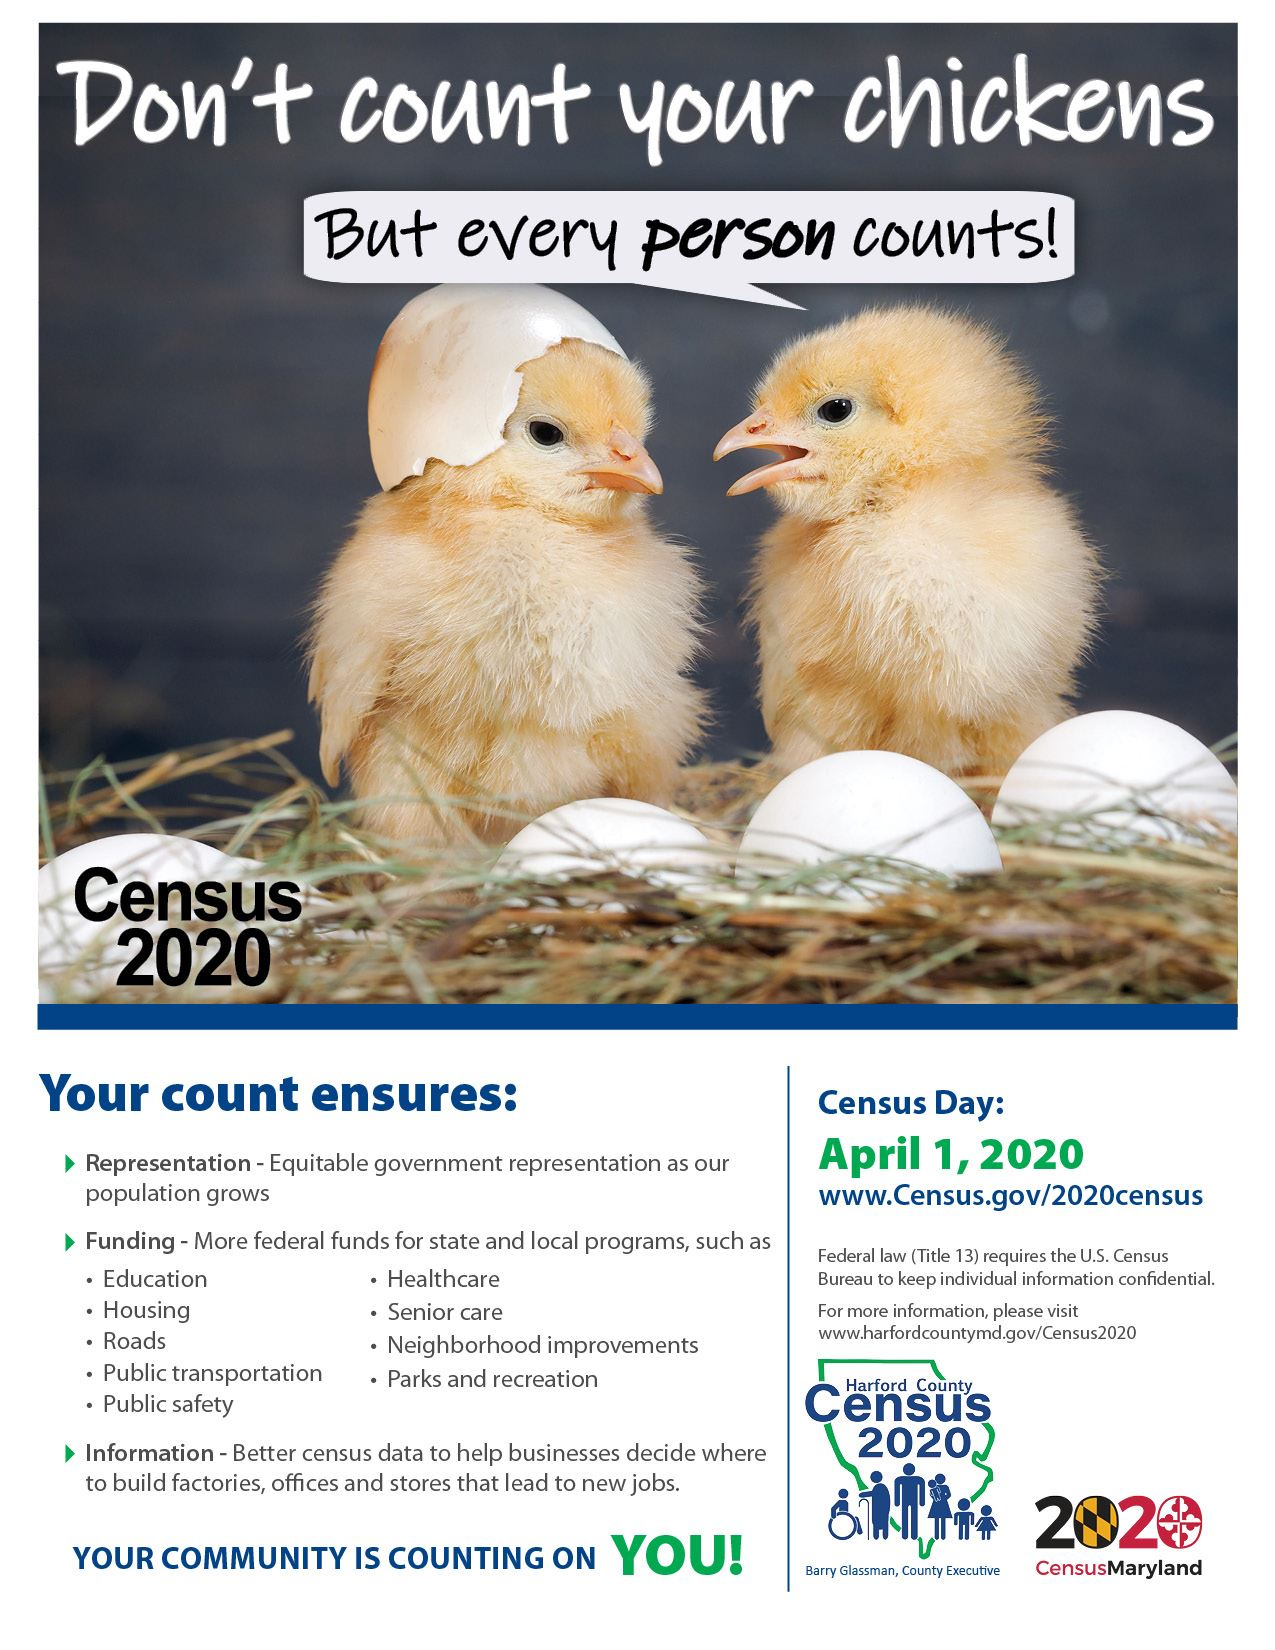 HCG 2020Census Flyer Agricultural community